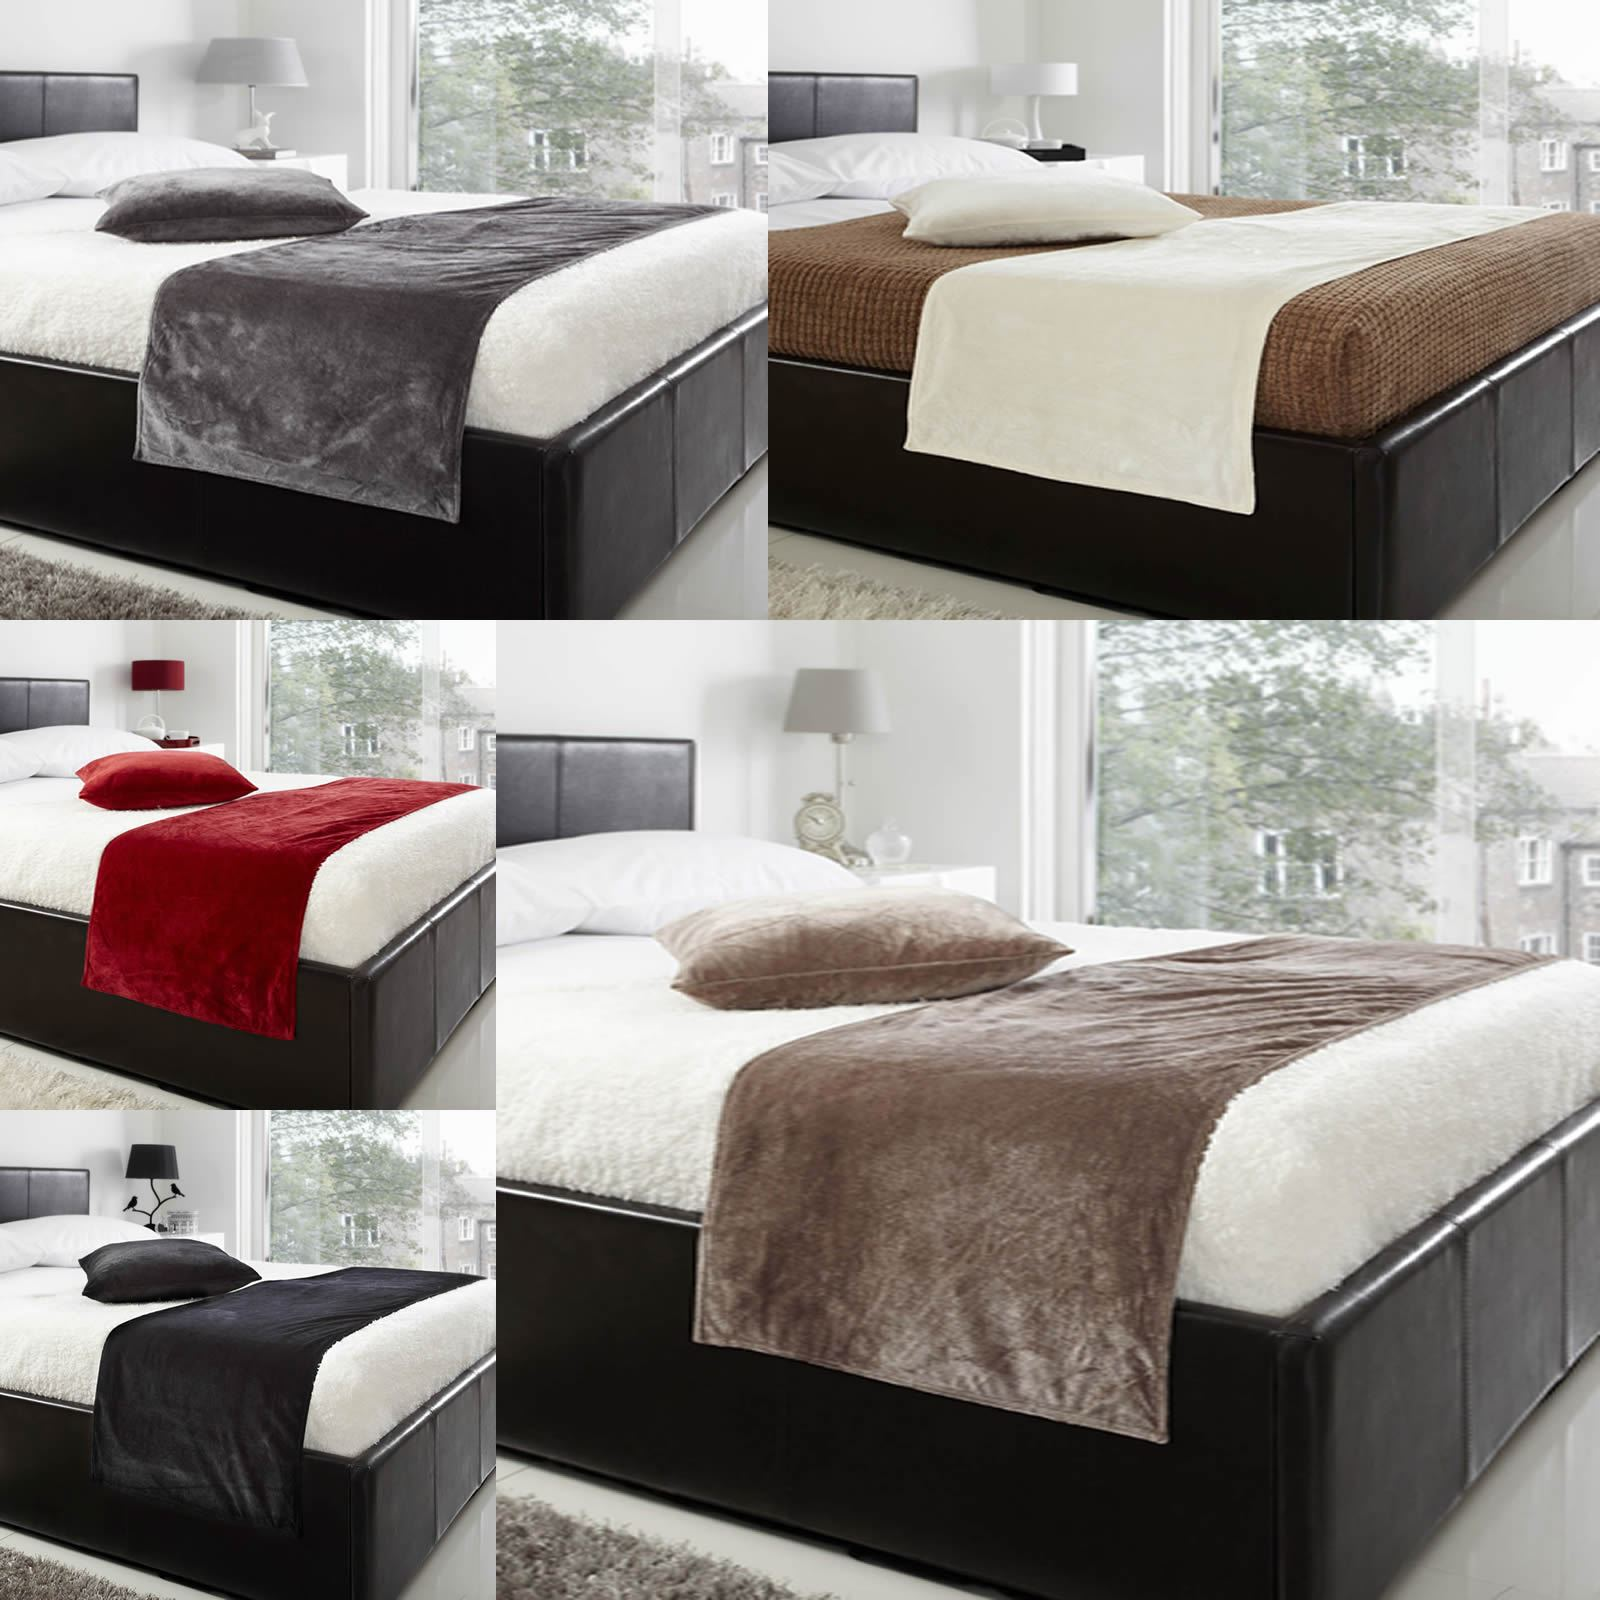 velours de luxe couvre lit lit coureur beige noir gris rouge cr me ebay. Black Bedroom Furniture Sets. Home Design Ideas